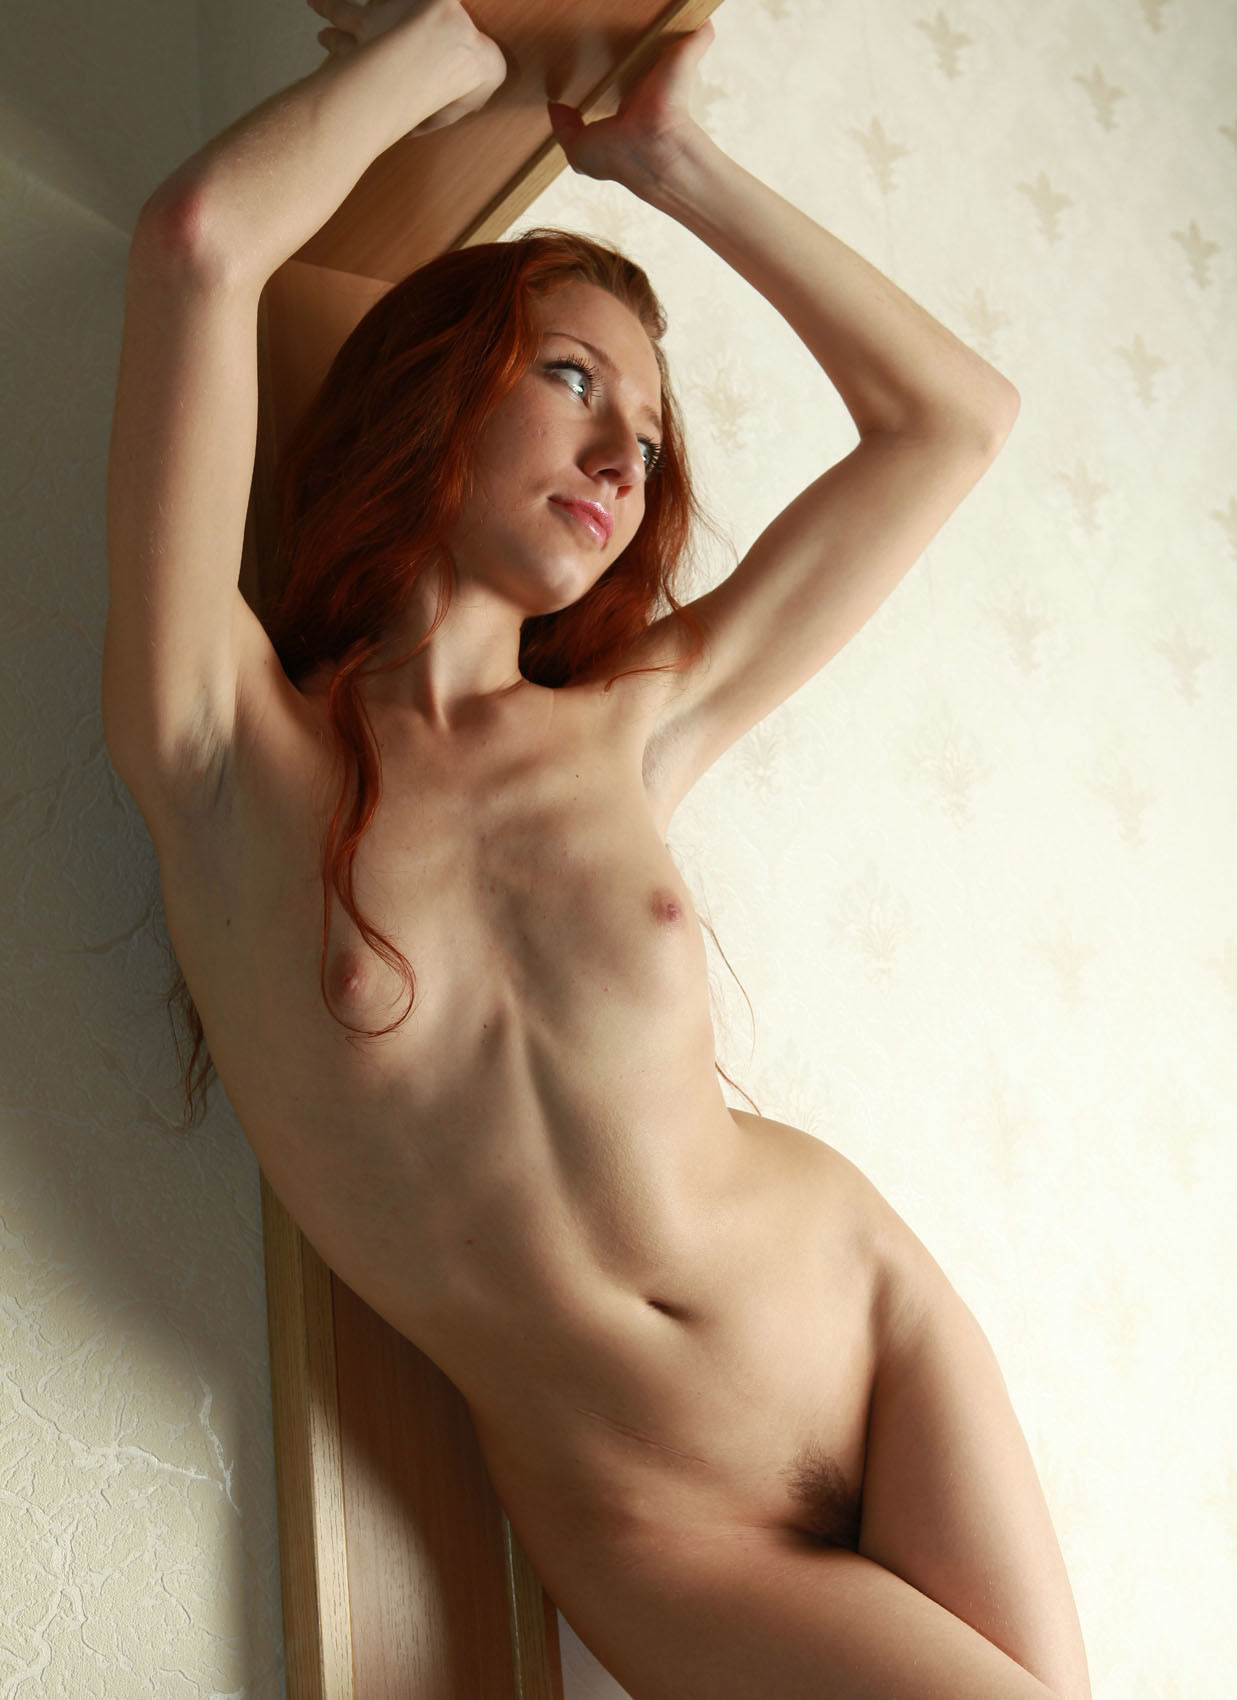 Old skinny redhead pictures